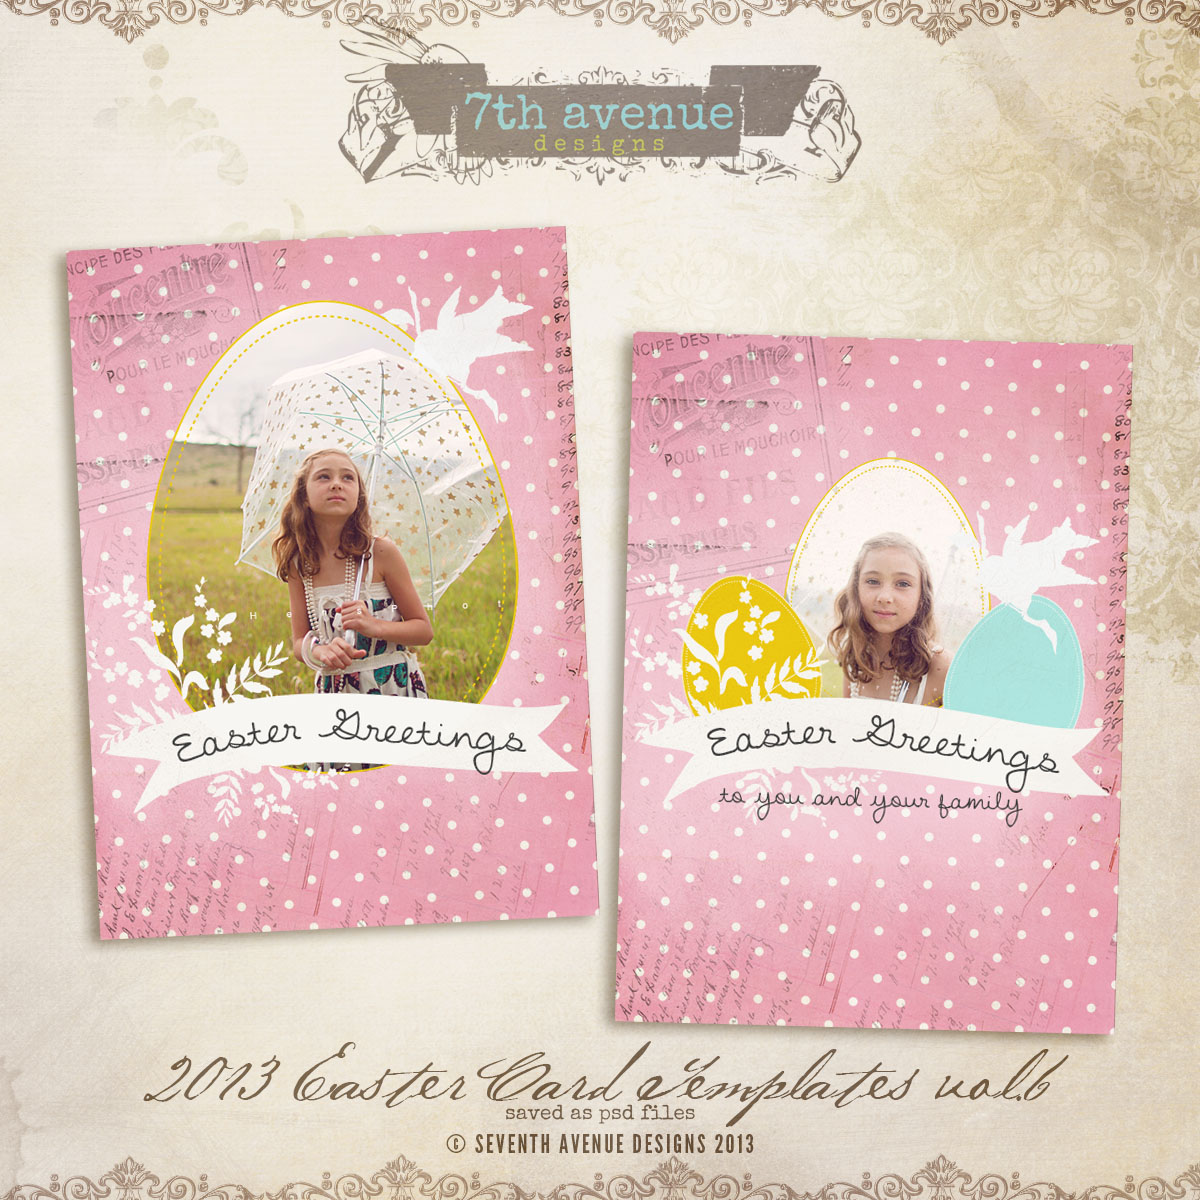 2013 Easter Card vol.6